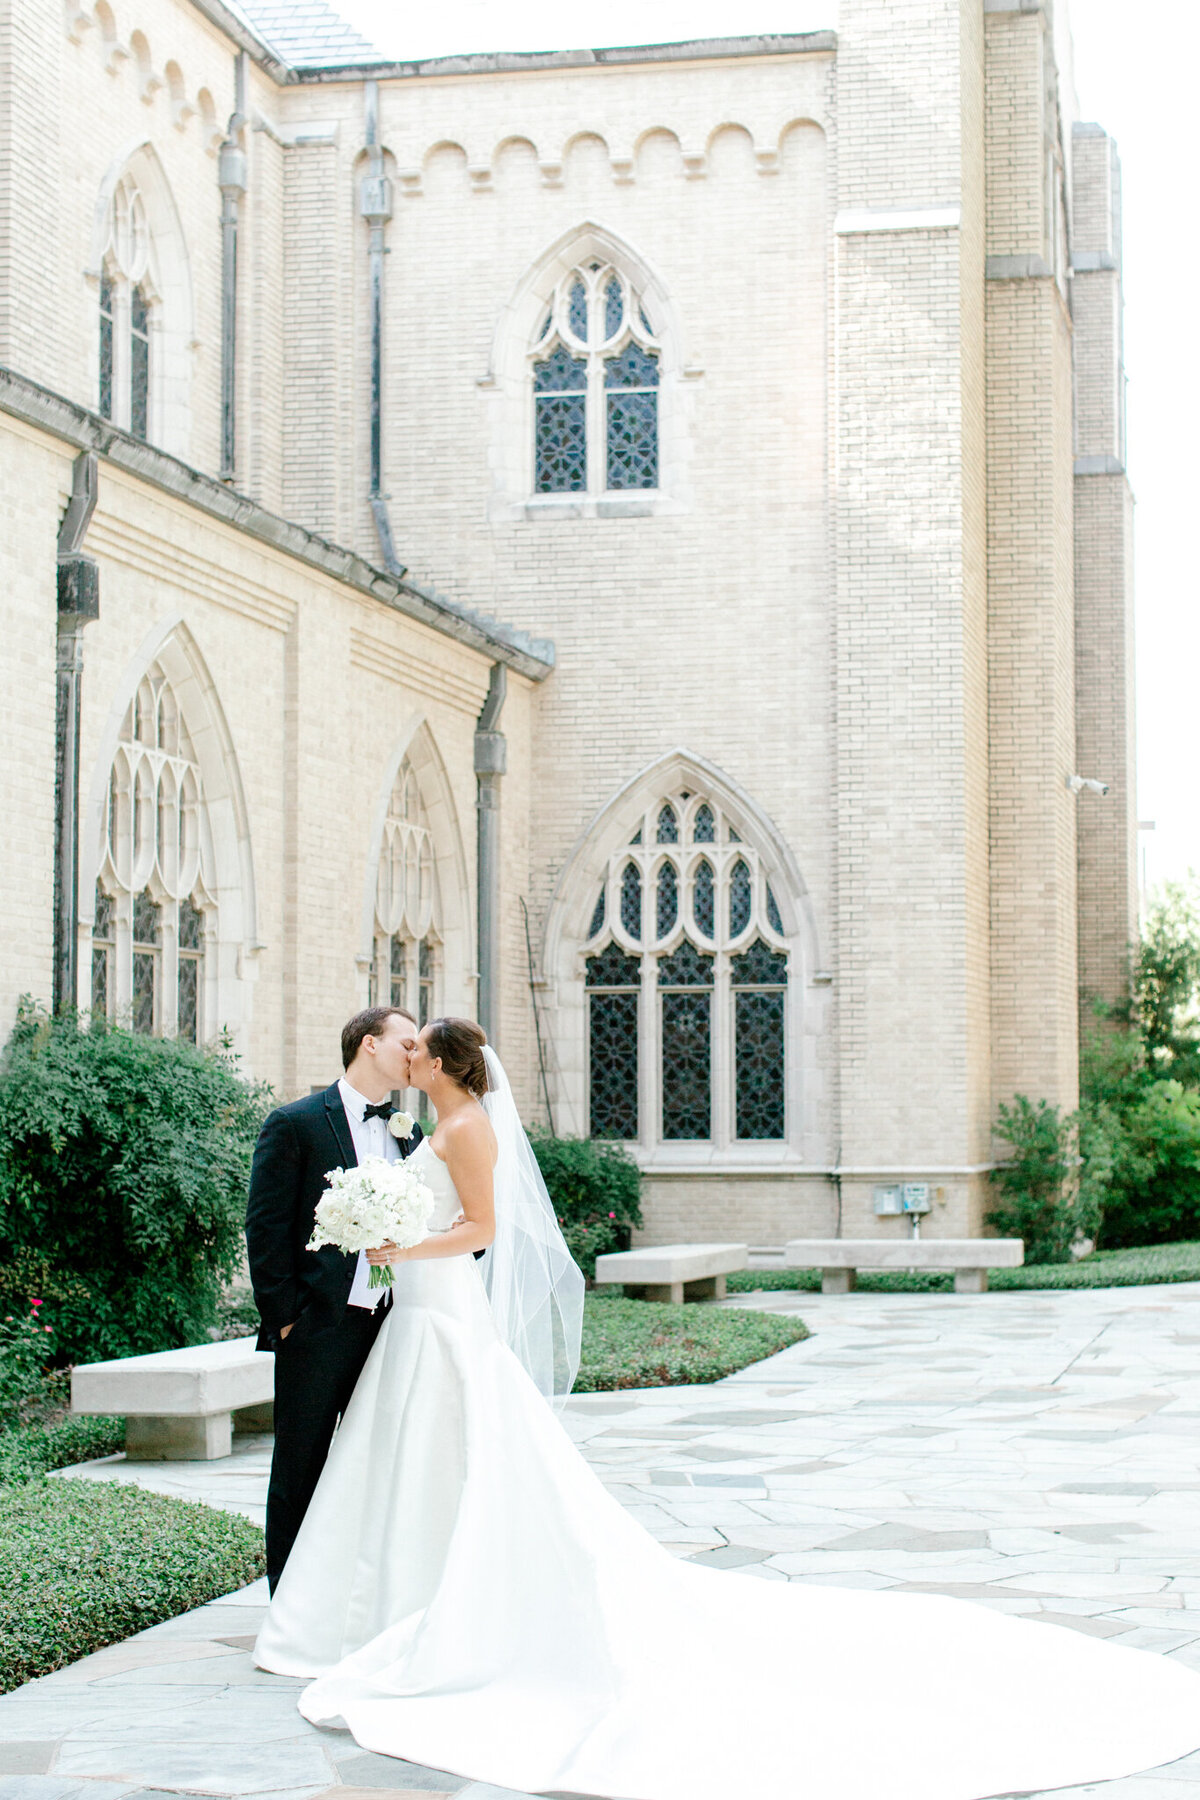 Wedding at the Crescent Court Hotel and Highland Park United Methodist Church in Dallas | Sami Kathryn Photography | DFW Wedding Photographer-19